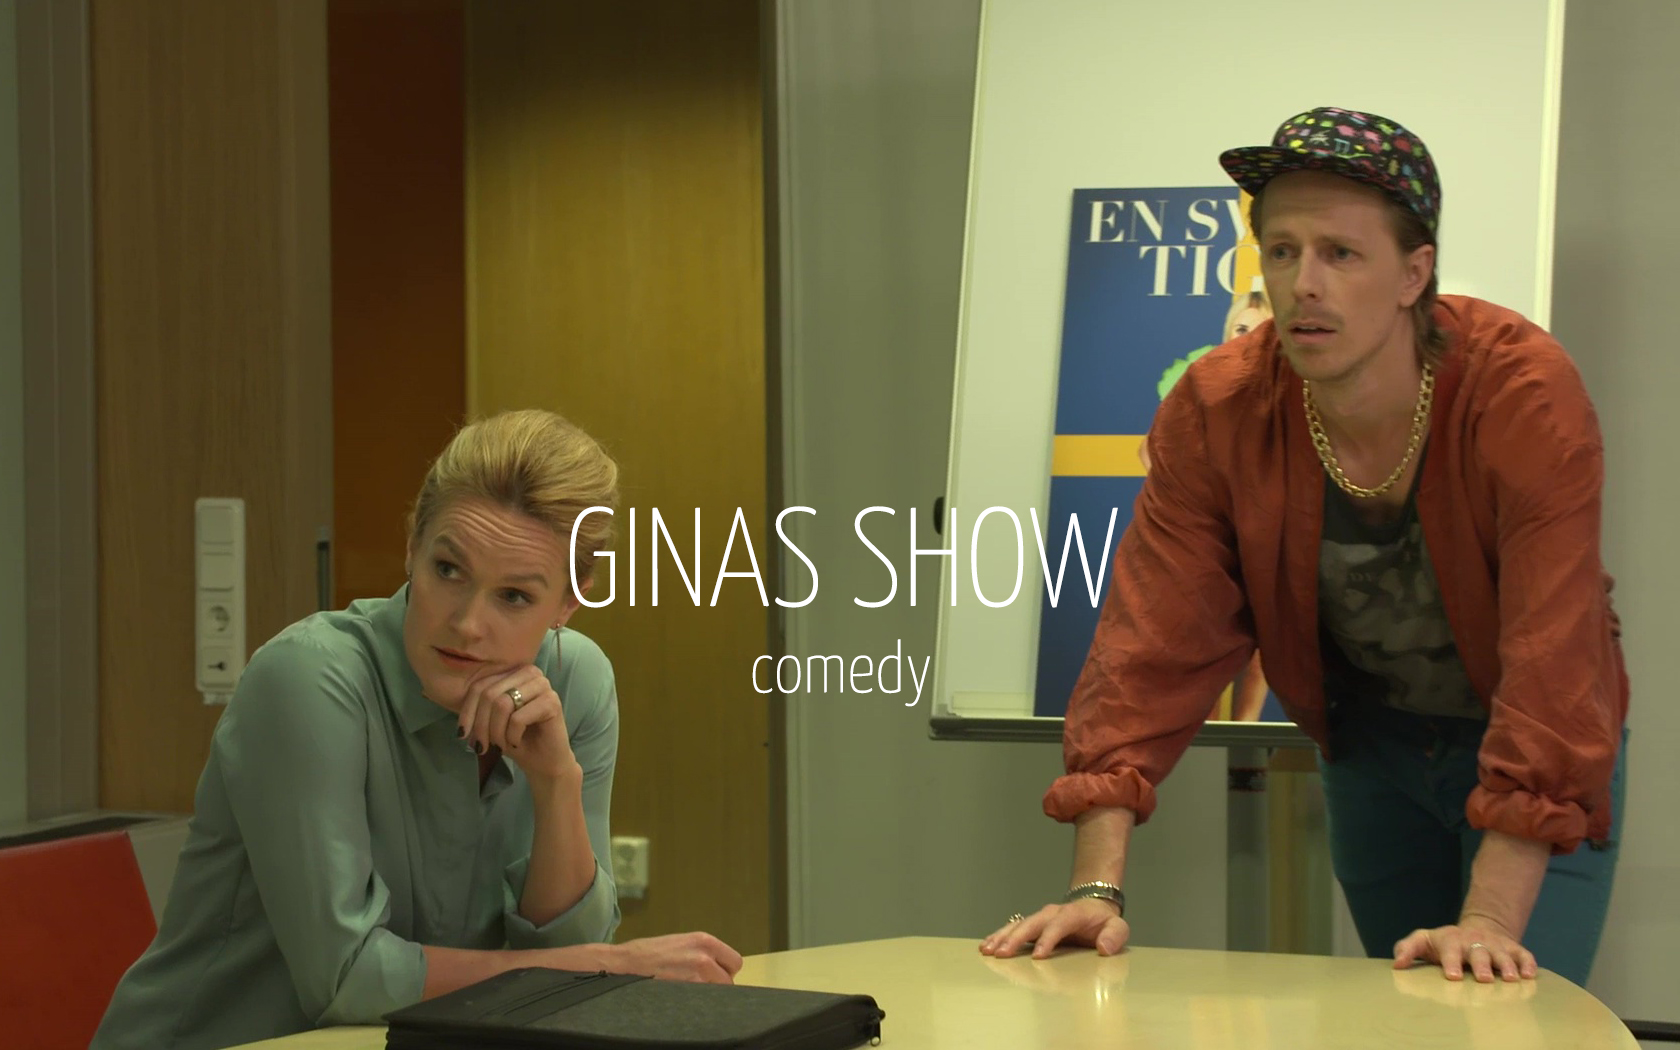 Scandinavian actor Fredrik Wagner as advertising guy in comedy series Ginas show with Johanna Wilson